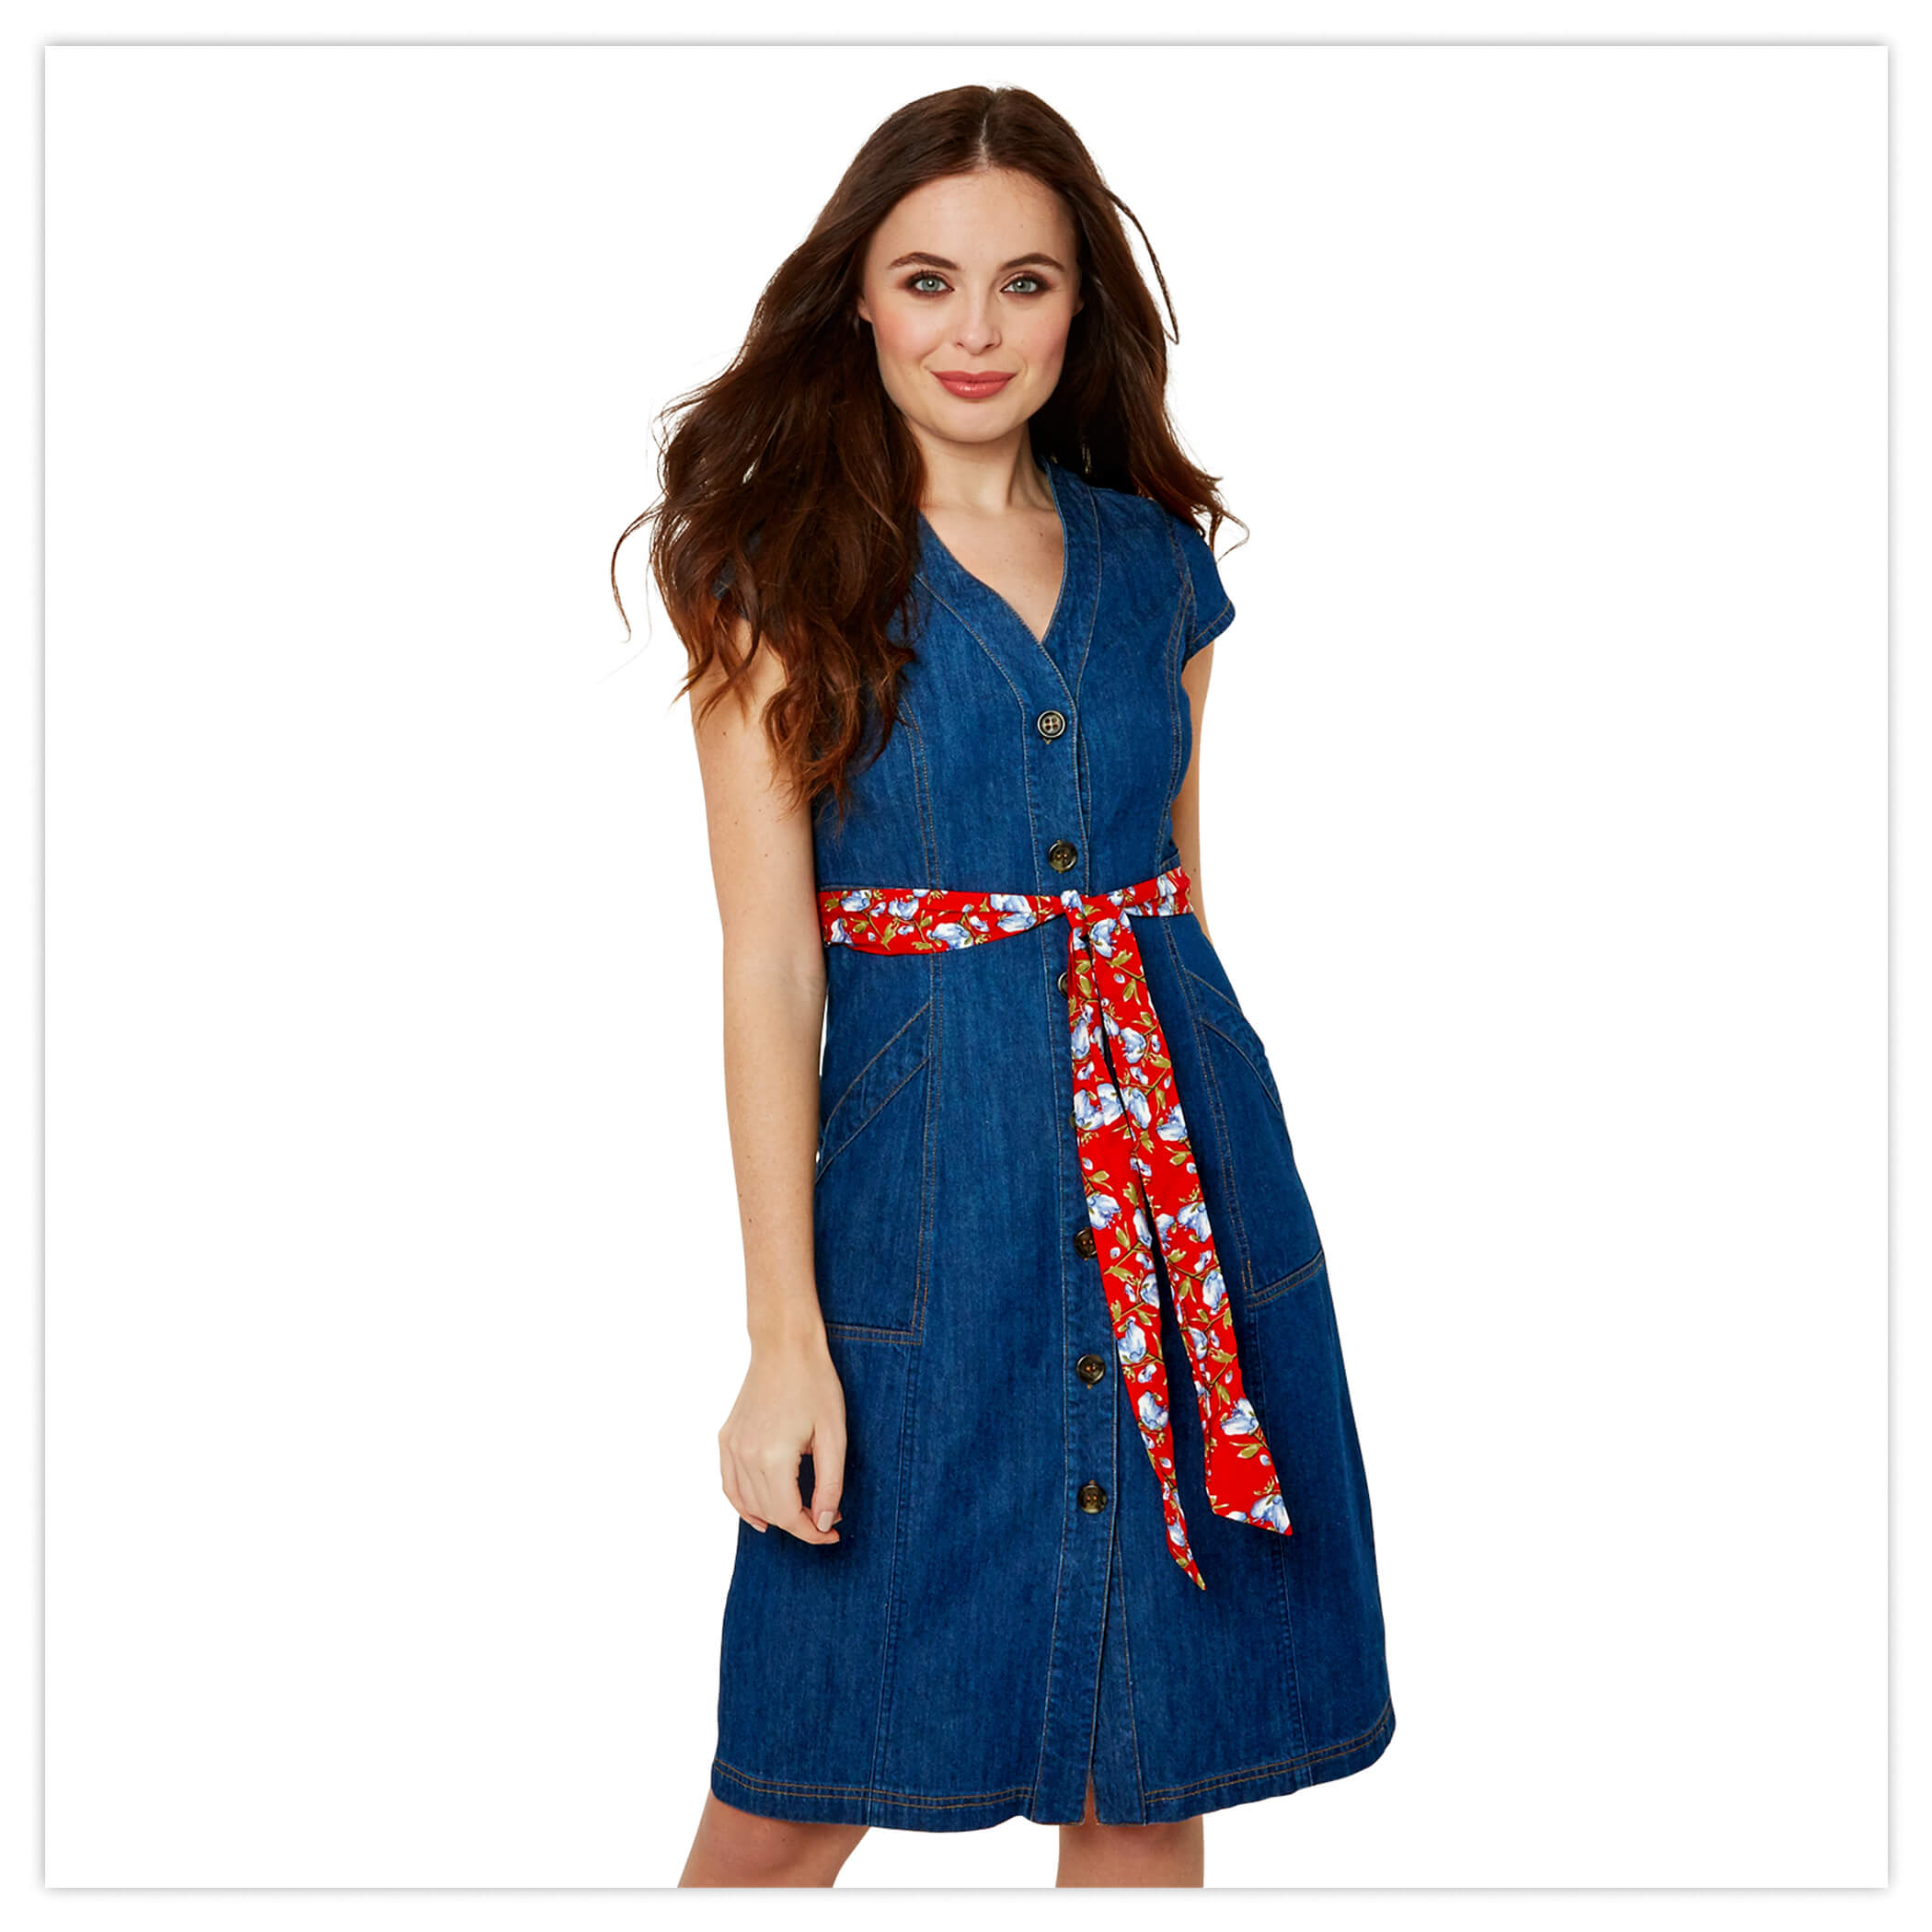 Delighful Denim Dress